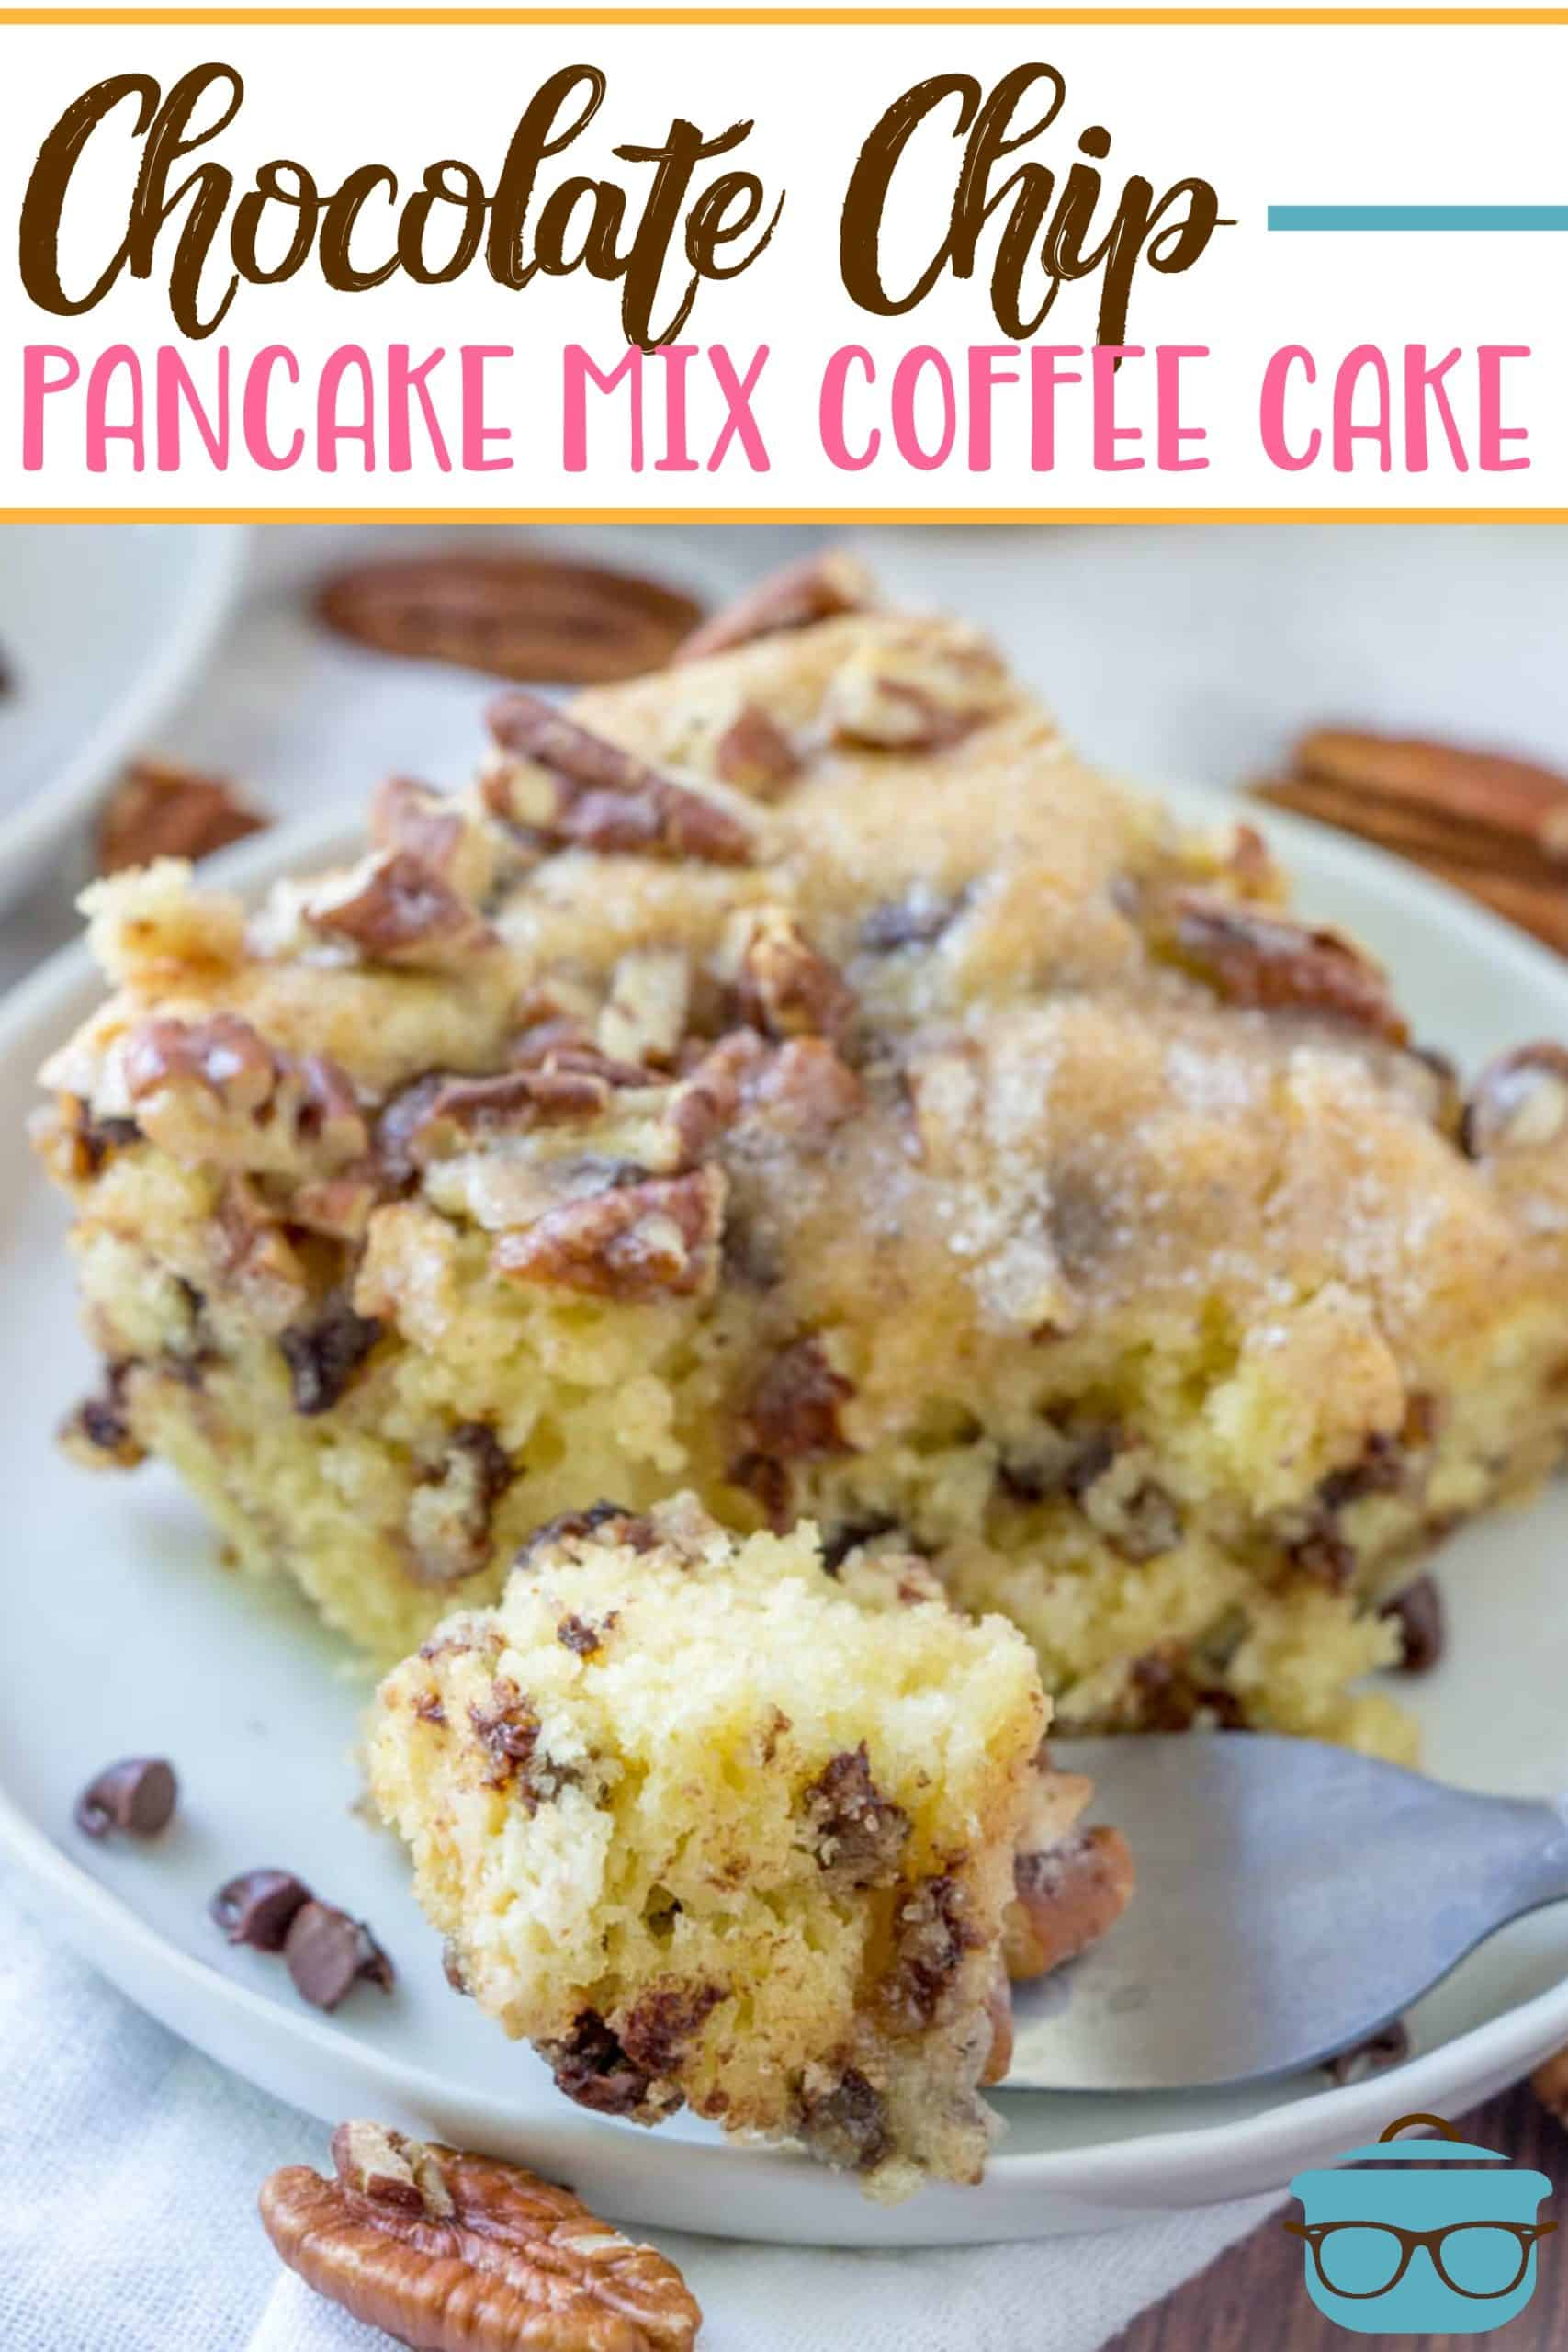 This Chocolate Chip Coffee Cake starts off so easy by using pancake mix with a few extra ingredients. For a snack, breakfast or dessert!